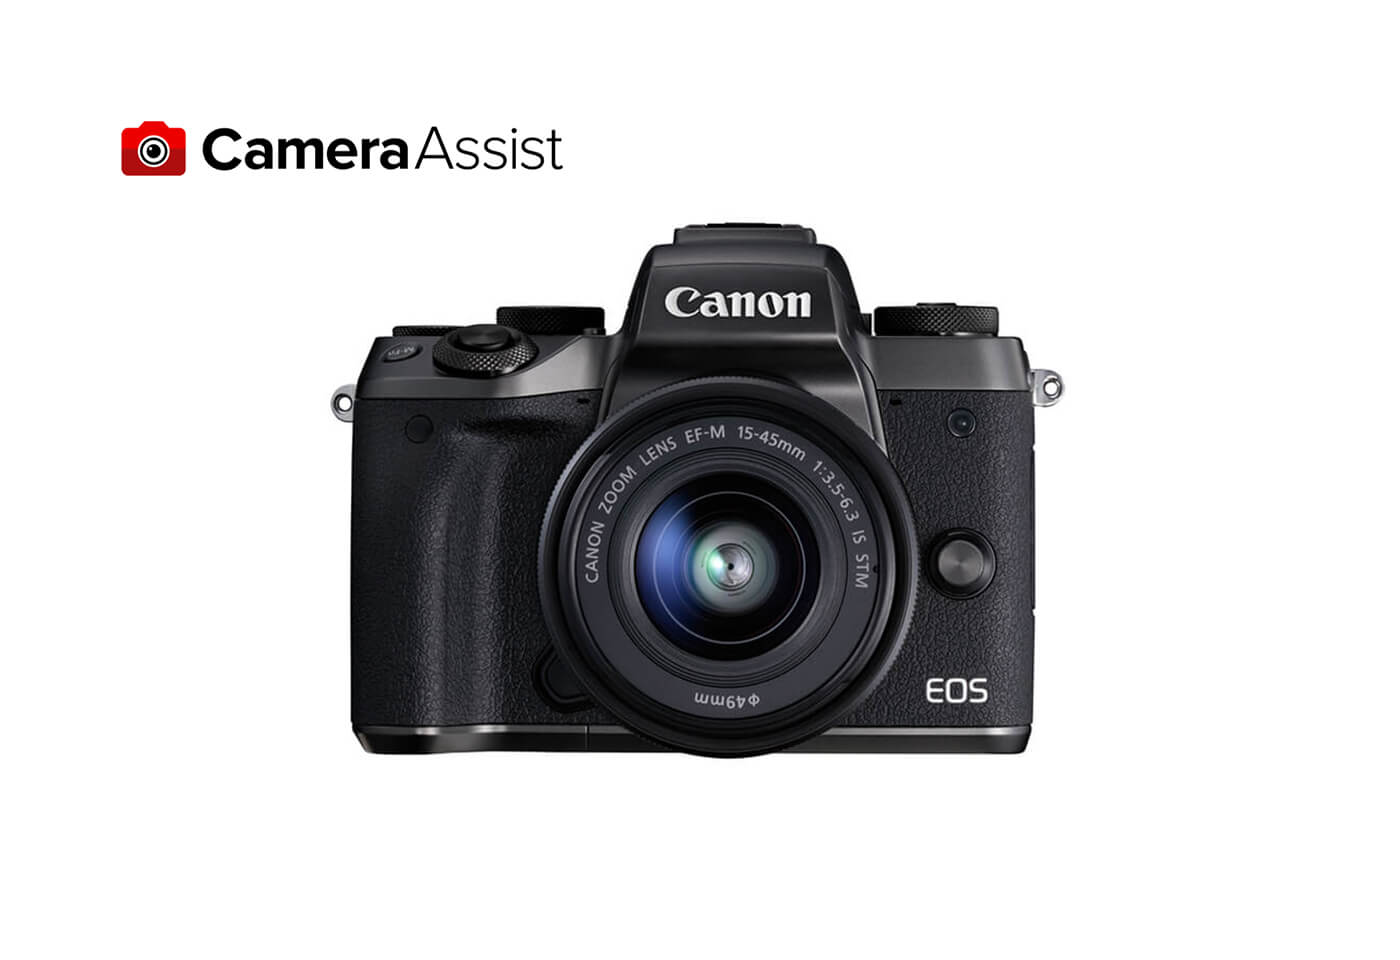 EOS M5 front image